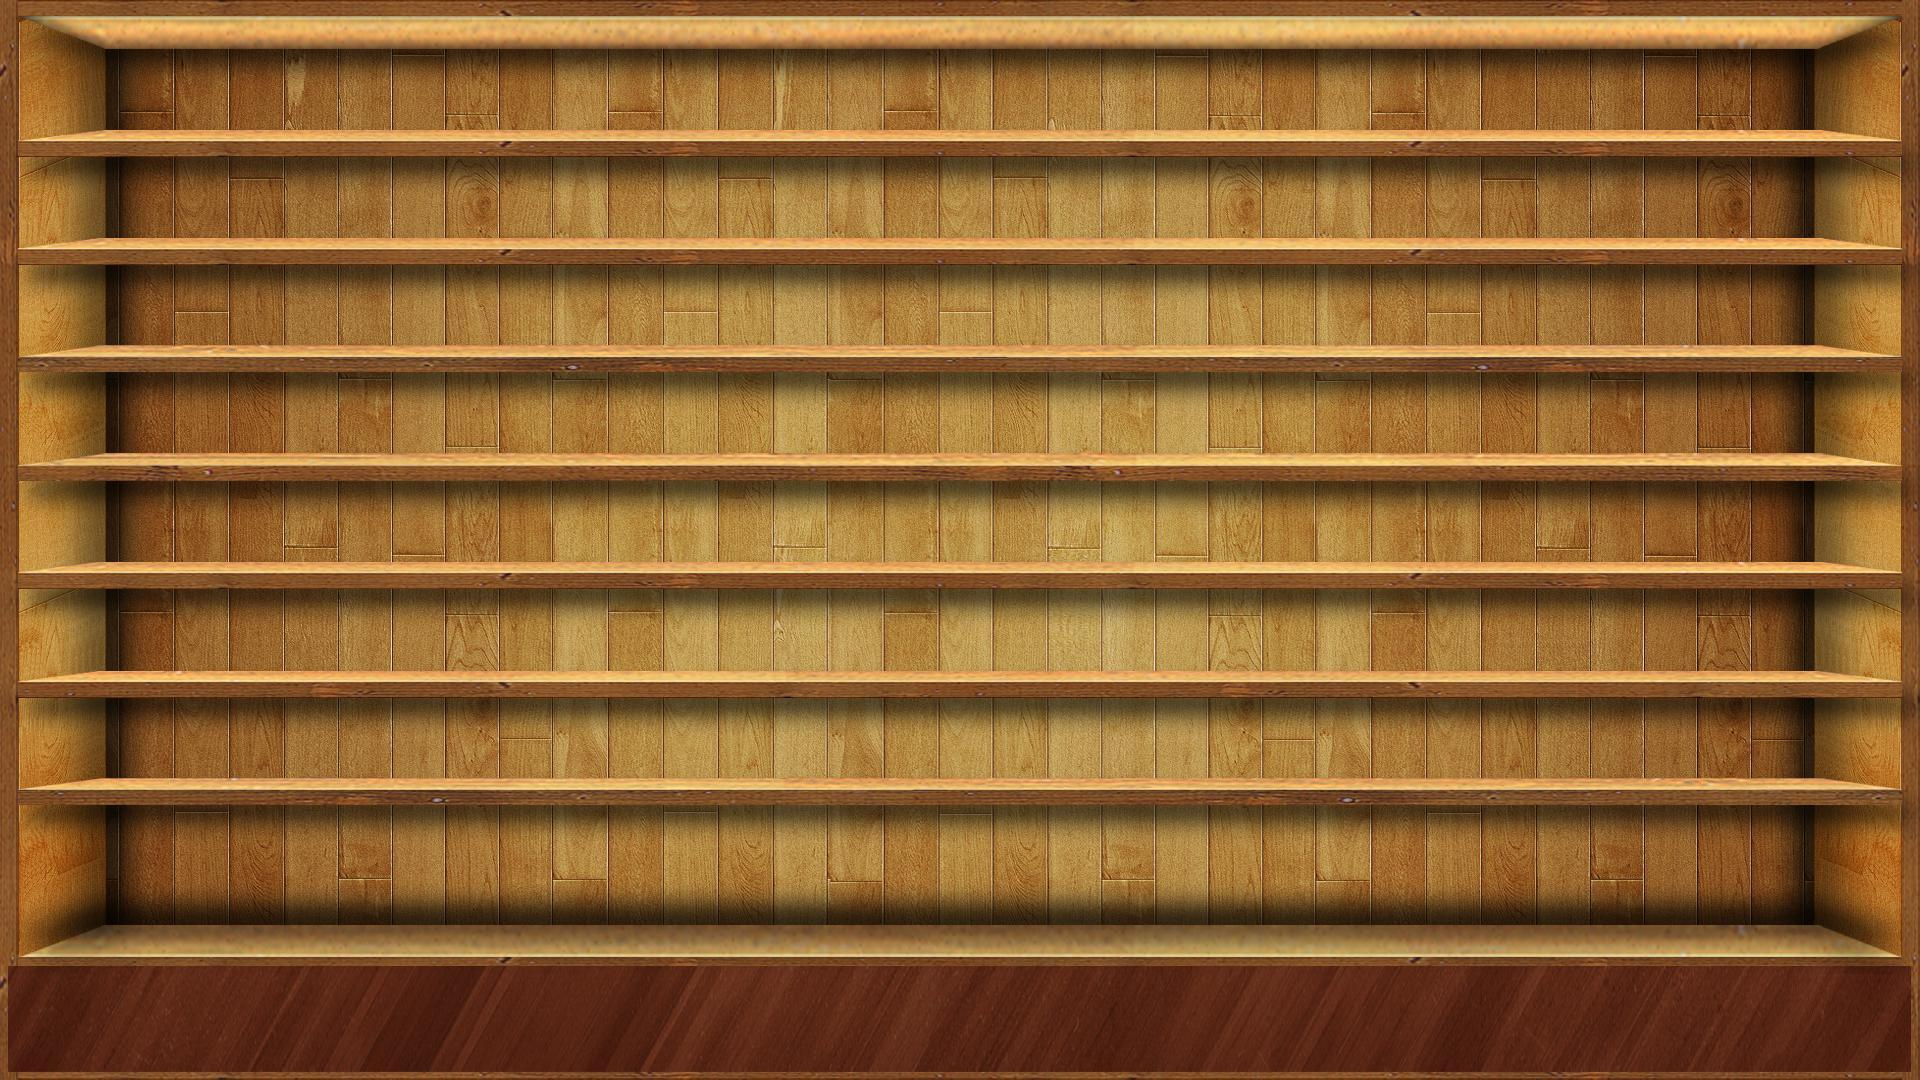 Wood Shelves HD Wallpapers Wallpapers computer